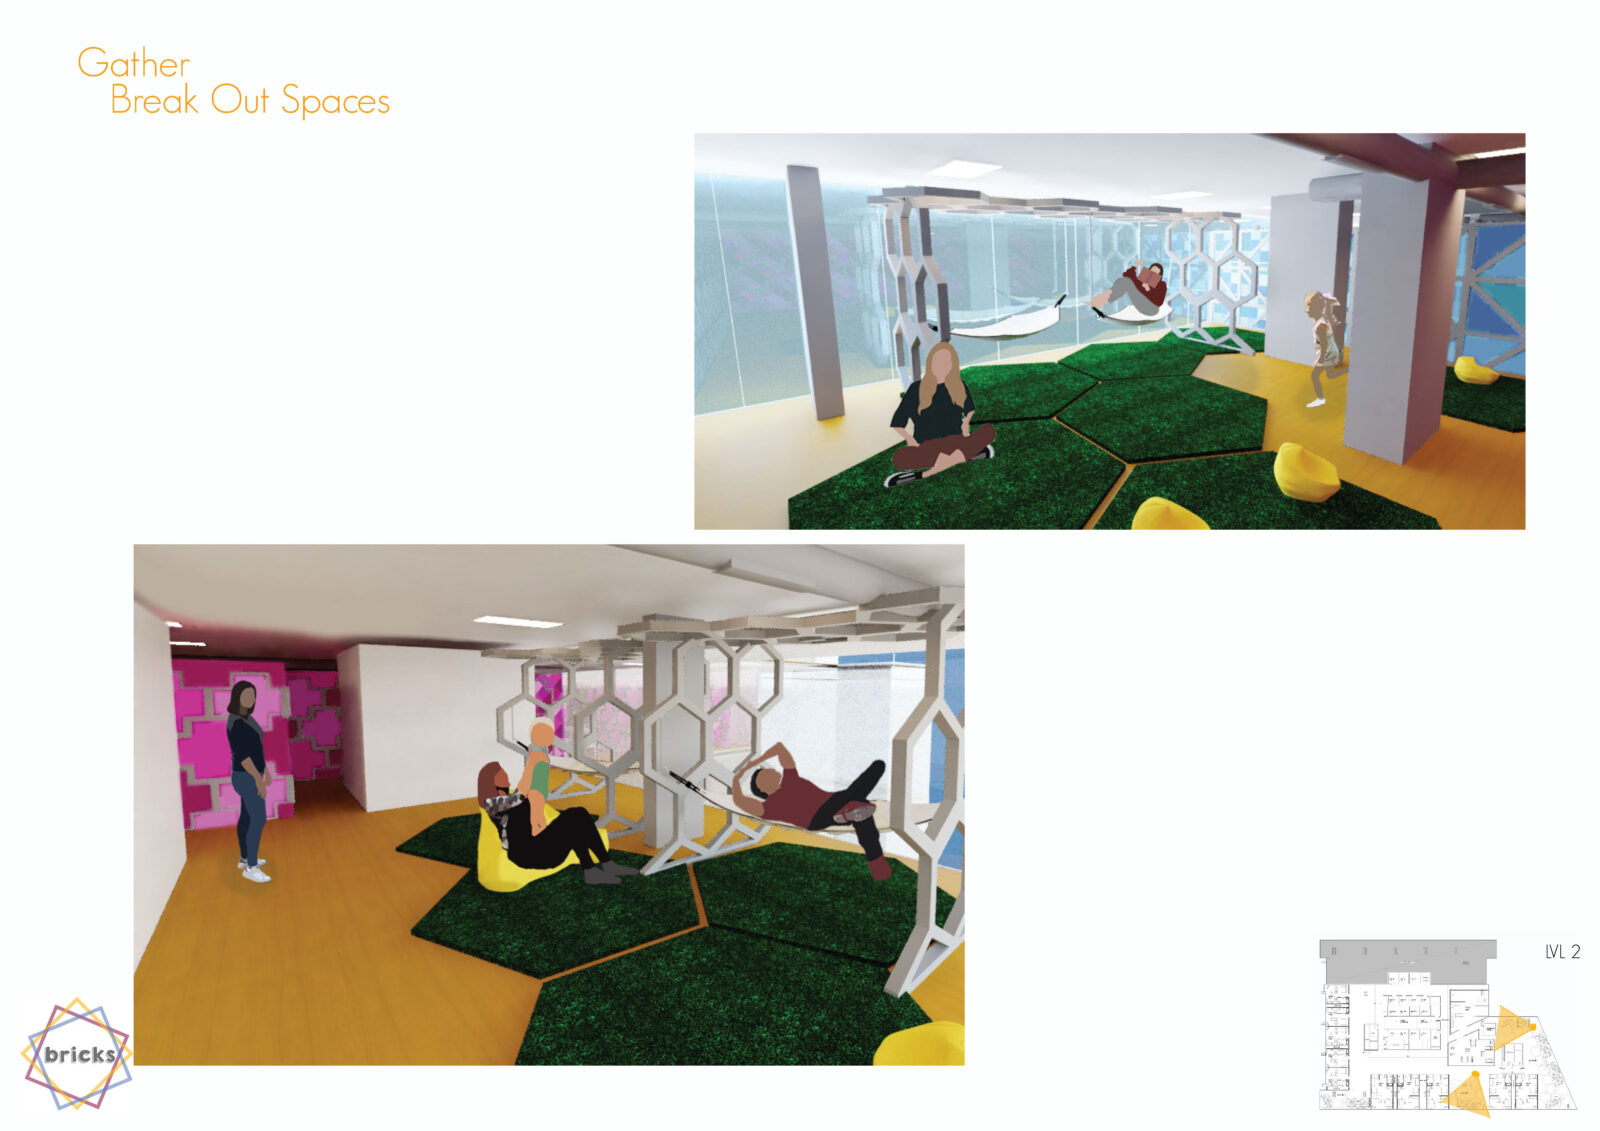 Image 1 - hexagonal astro-turf rugs on the floor, yellow beanbags scattered around. Two hammocks hang from a frame made up of repeating hexagons. Full height windows create the background. A teen is sitting on one of the rugs to the left, a lady is lying on a hammock reading a book and a young girl runs over.  Image 2 - hexagonal astro-turf rugs on the floor, yellow beanbags scattered around. Two hammocks hang from a frame made up of repeating hexagons. A mum with her baby sit and play on a bean bag. A dad is lying on the hammock closest to the camera. A lady walks by in the background. The wall in the background are a mosaic of pink and purple crosses.